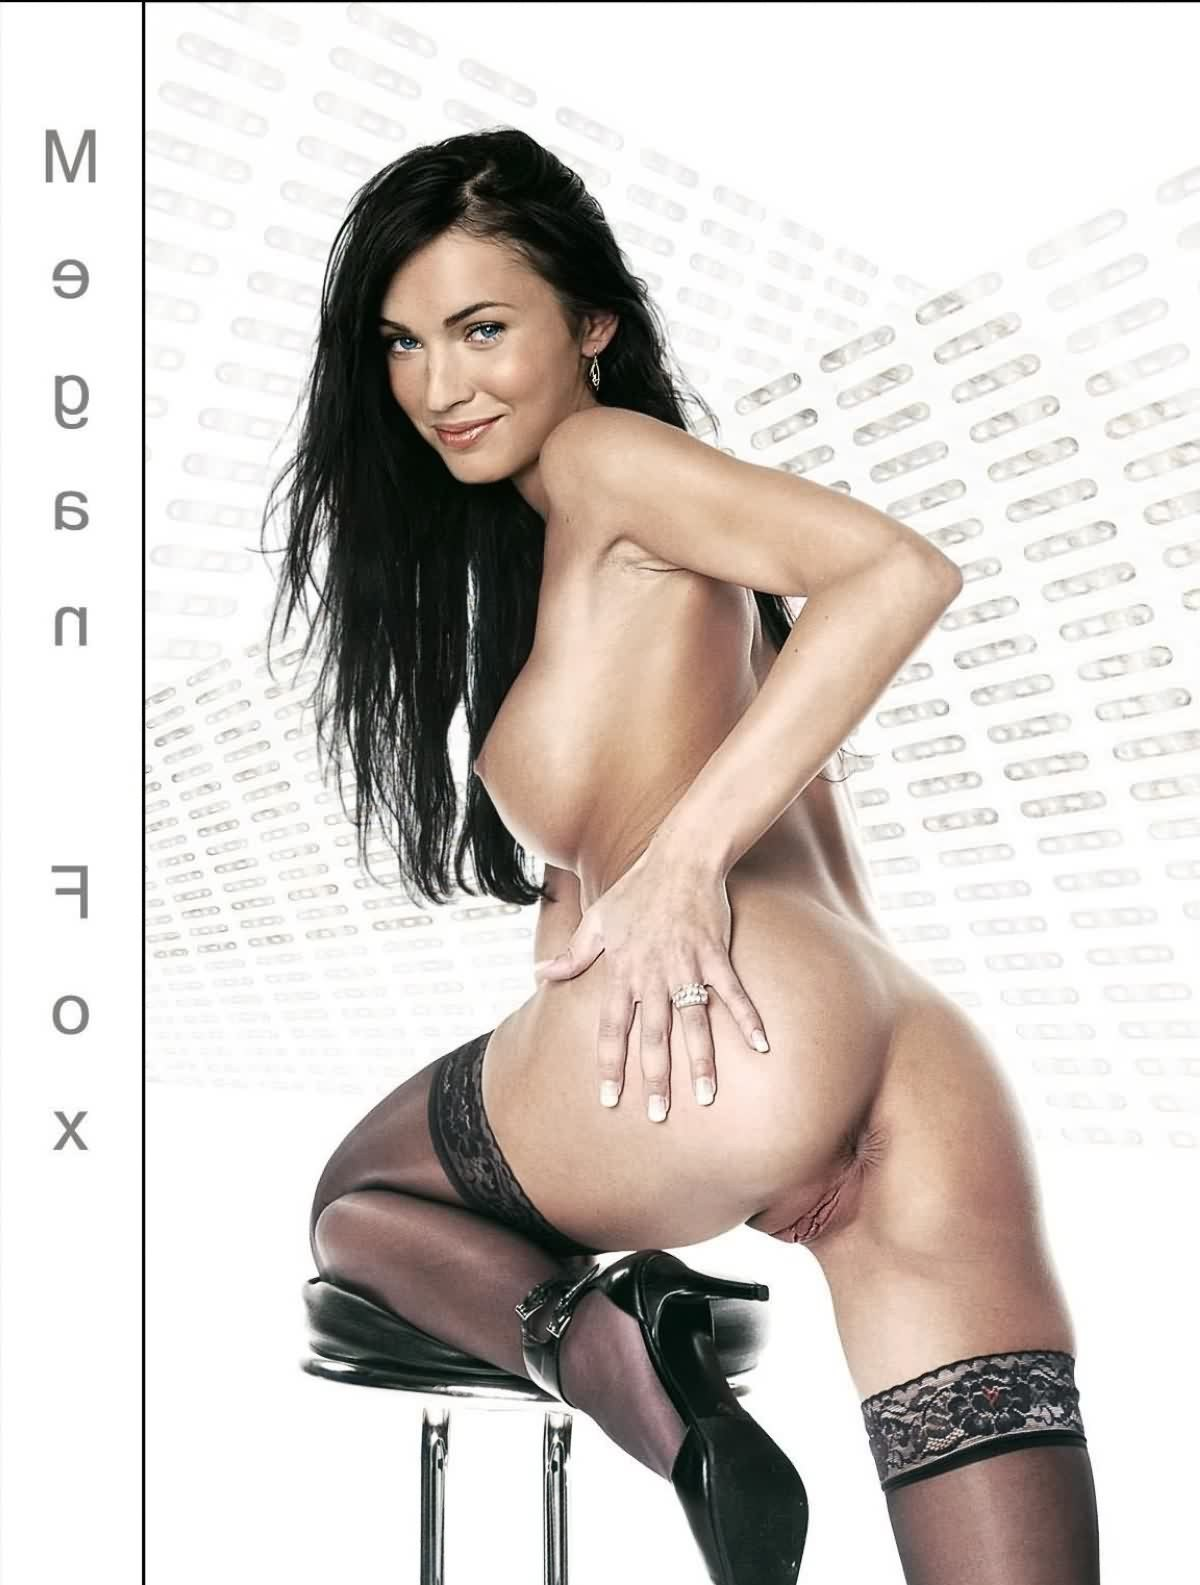 Megan Fox Pussy Hole - 56 Collection Megan Fox Hot Nude xxx Pics